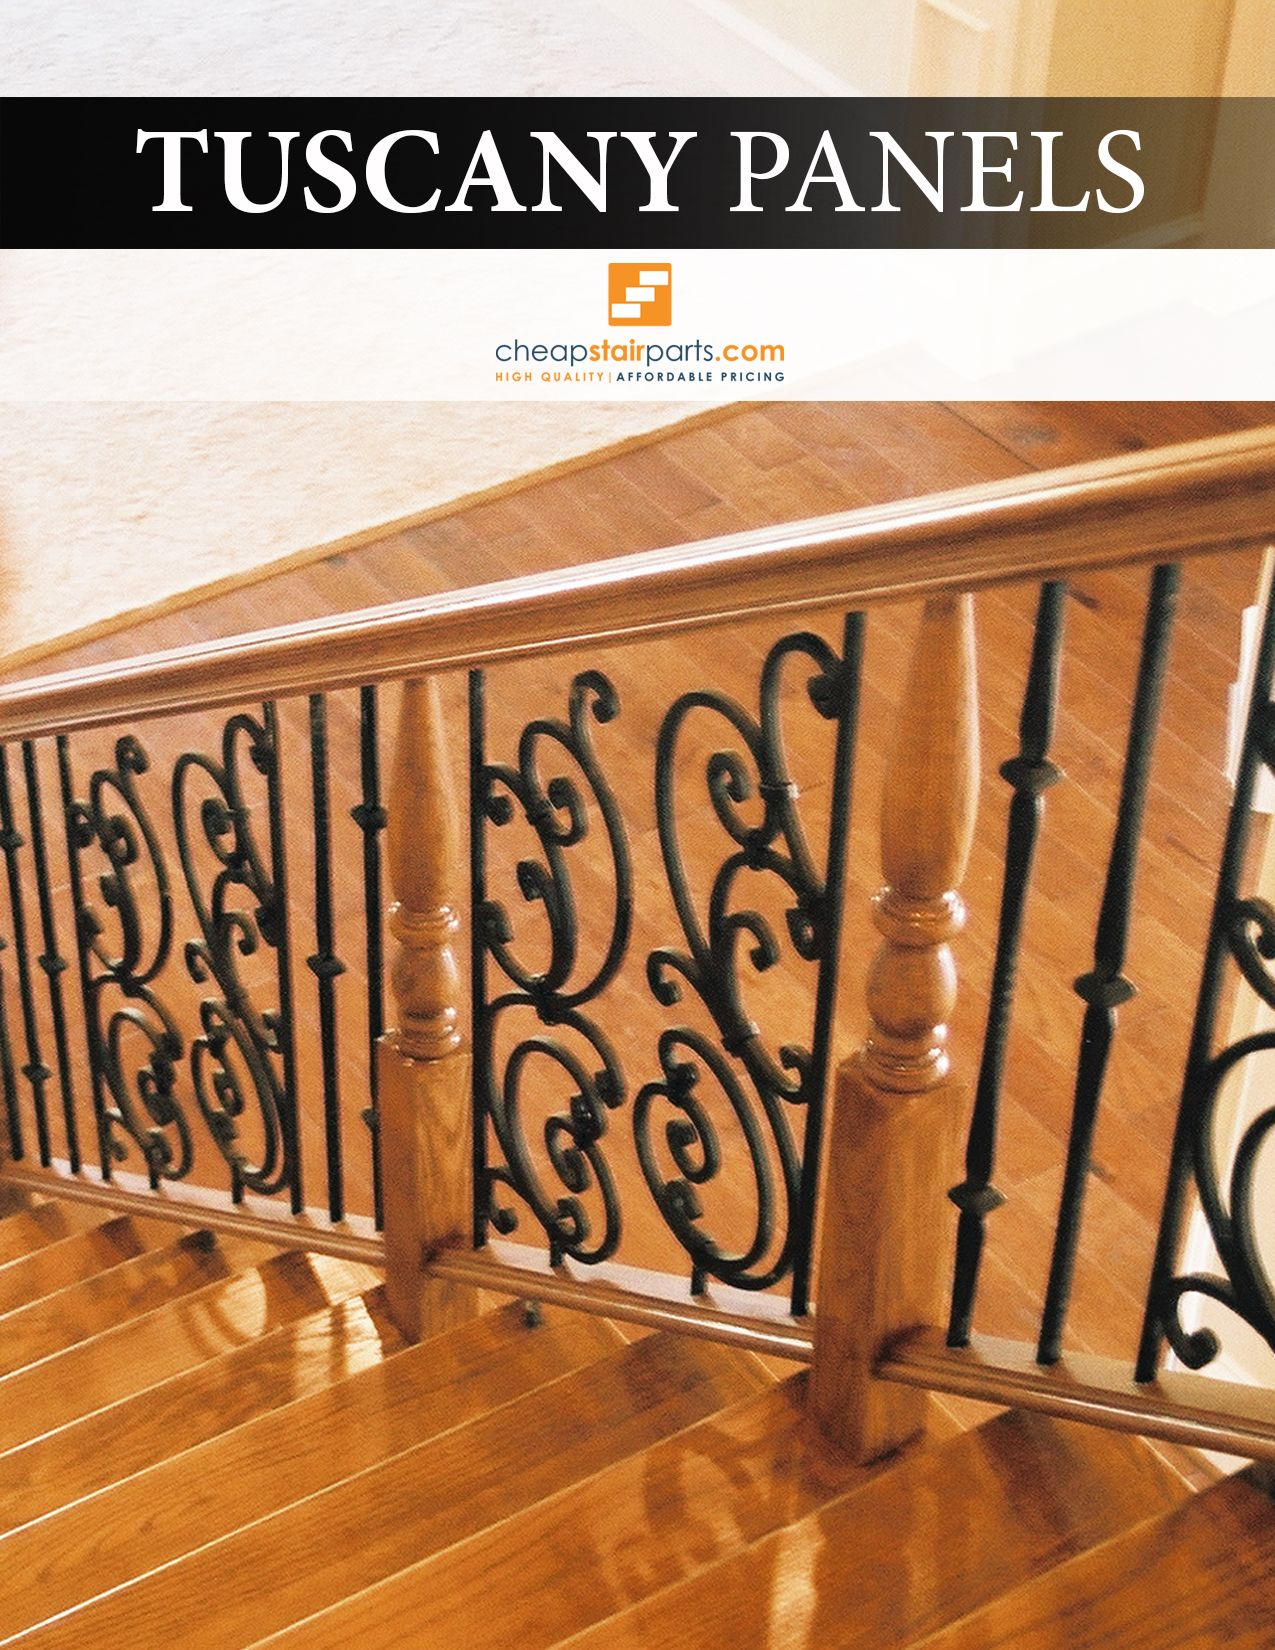 Tuscany Iron Panels Are Used To Add A Decorative Focal Point Into Your Stair Or Balcony Railing Or You Can Make A Complet Stair Remodel Stair Paneling Paneling